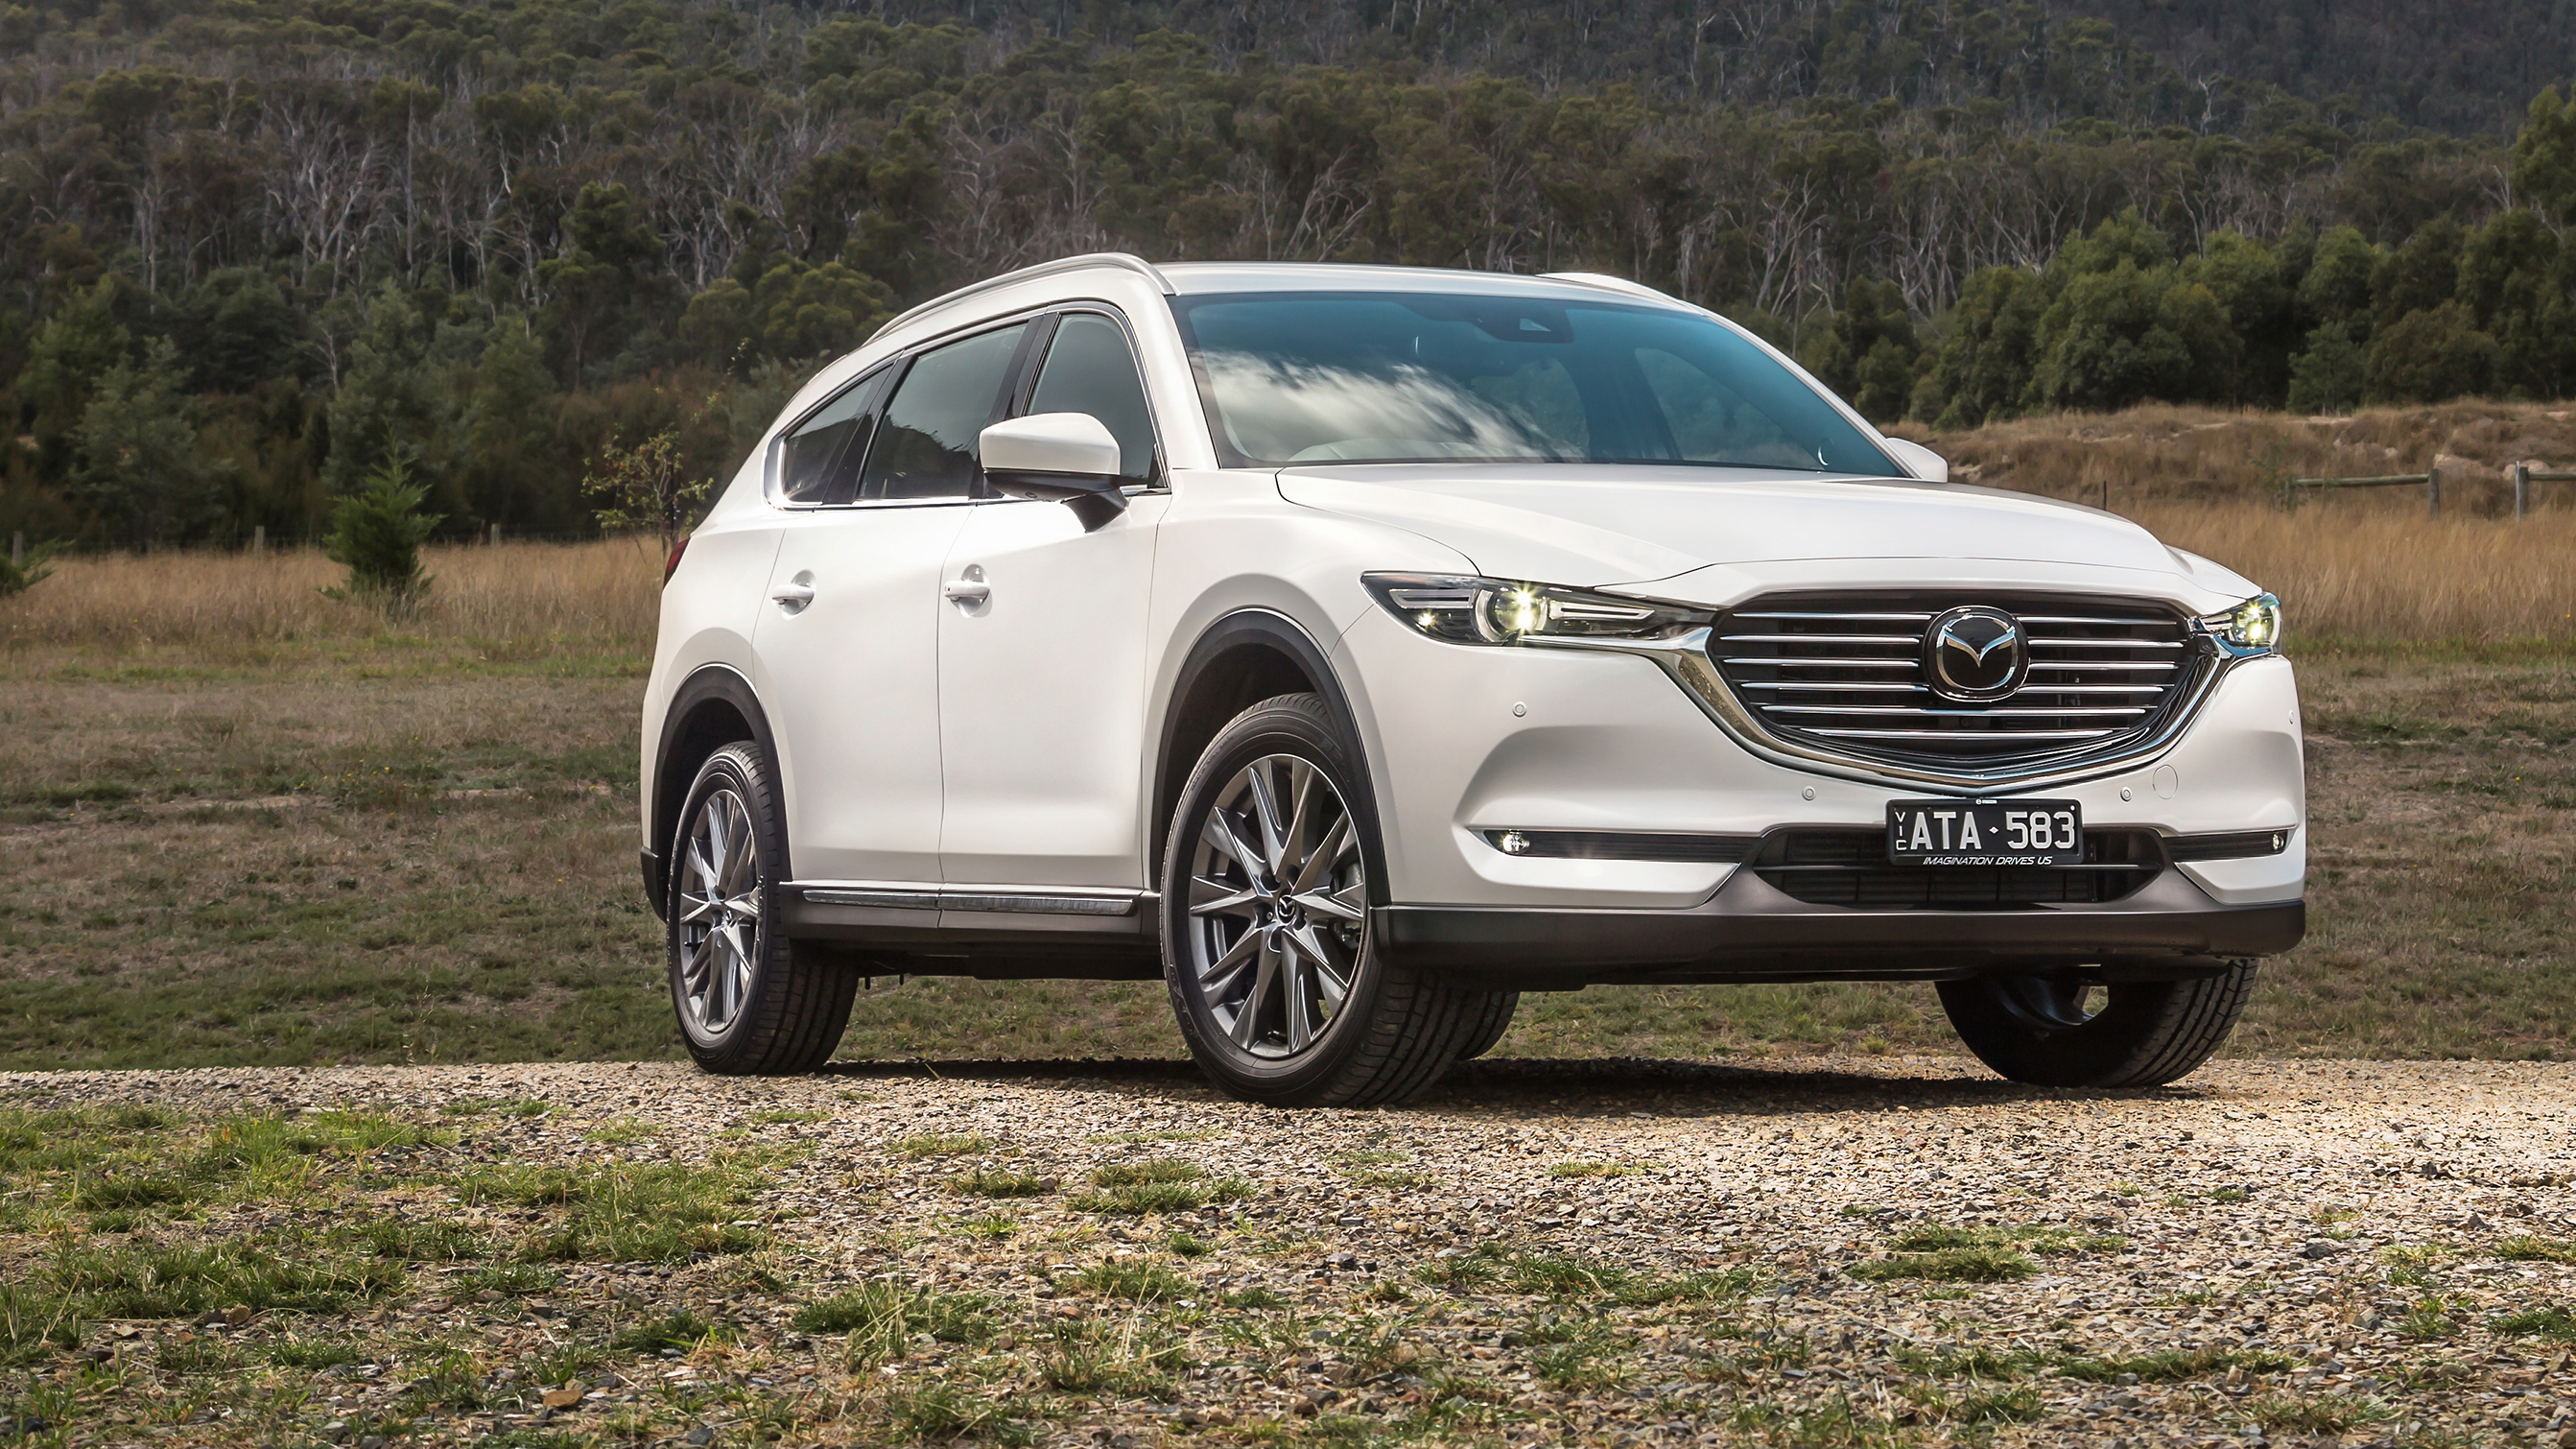 2018 Mazda CX-8: Styling, Specs, Availability >> 2018 Mazda Cx 8 Review Caradvice